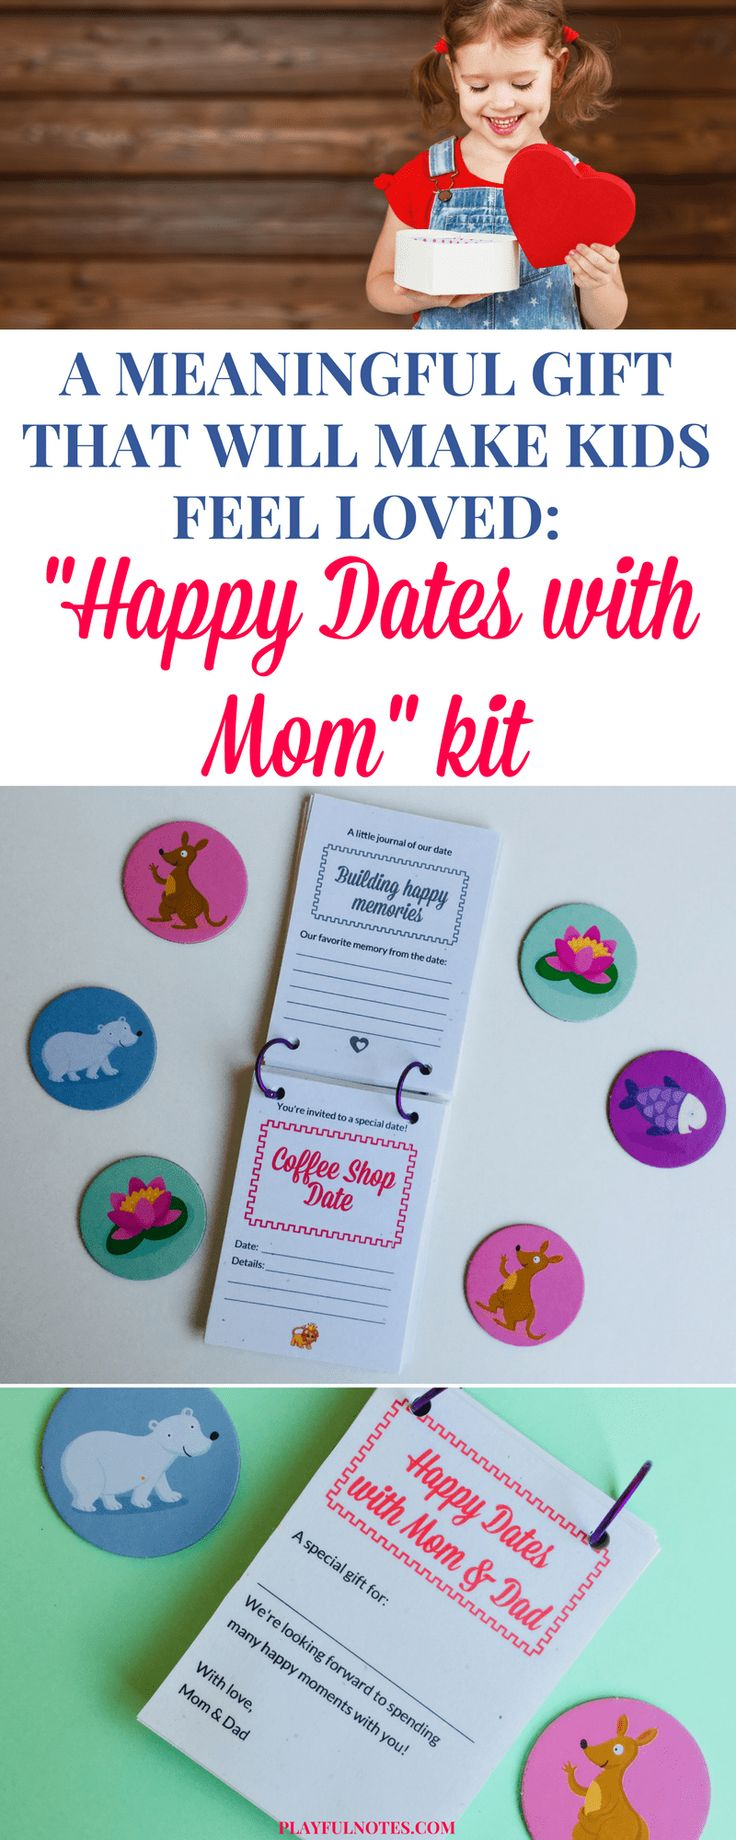 Date cards for kids: These date coupons for kids are a wonderful way to offer them a meaningful gift, make them feel loved and plan many happy moments together. | Mom-child date ideas | Printable coupons for kids #PositiveParenting